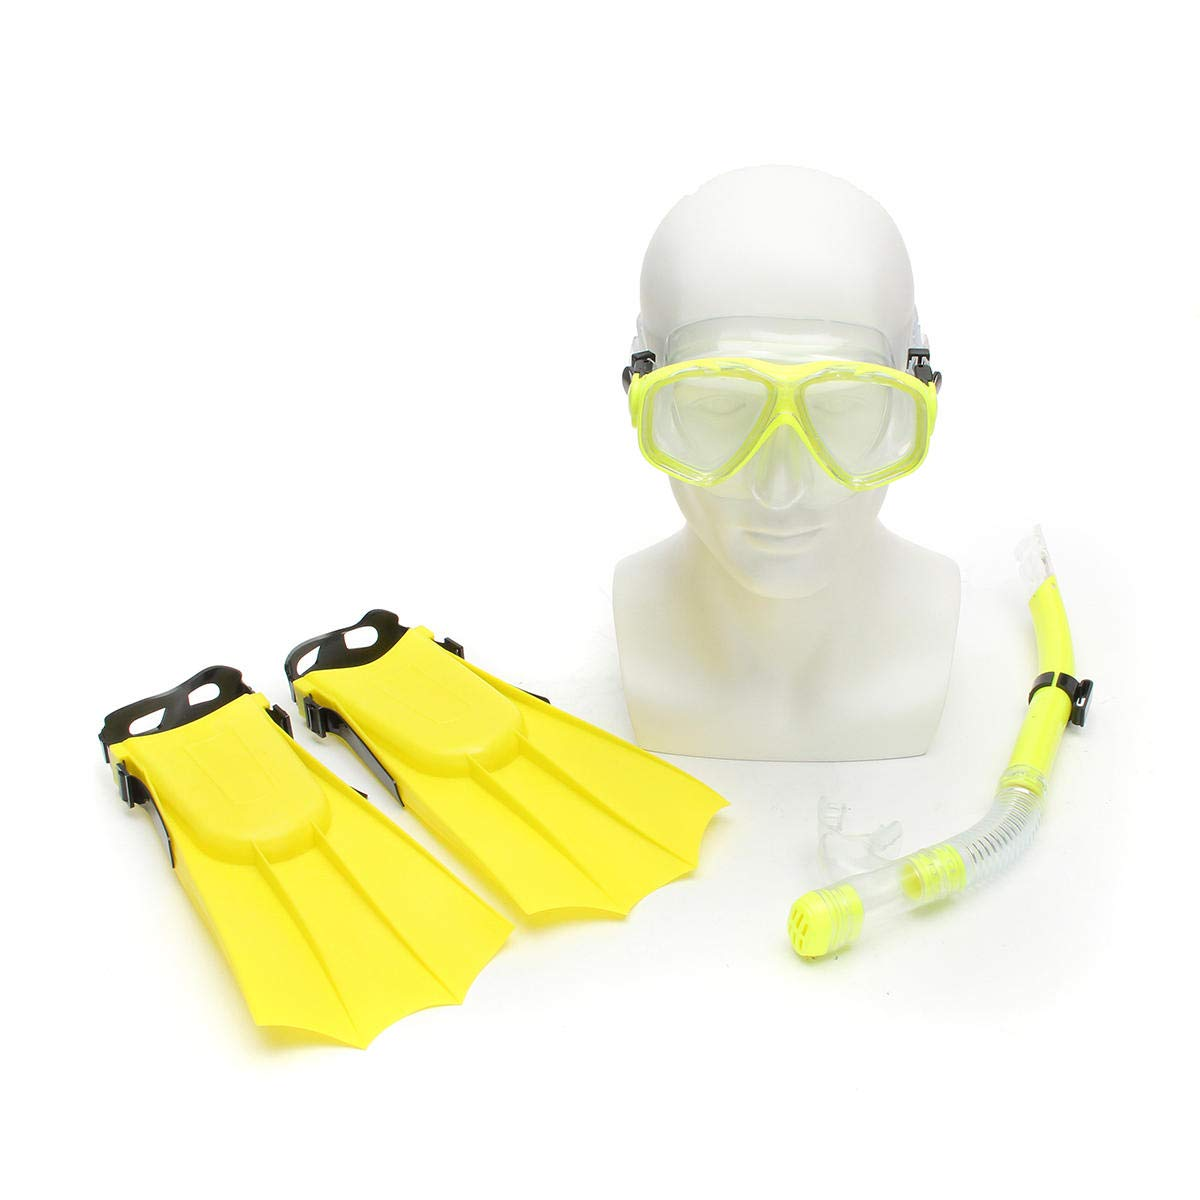 Shop Sport Kid Snorkel Mask Scuba Goggles + Breathing Tube+ Webbed Feet Swimming Diving Set - Yellow by Shop Sport